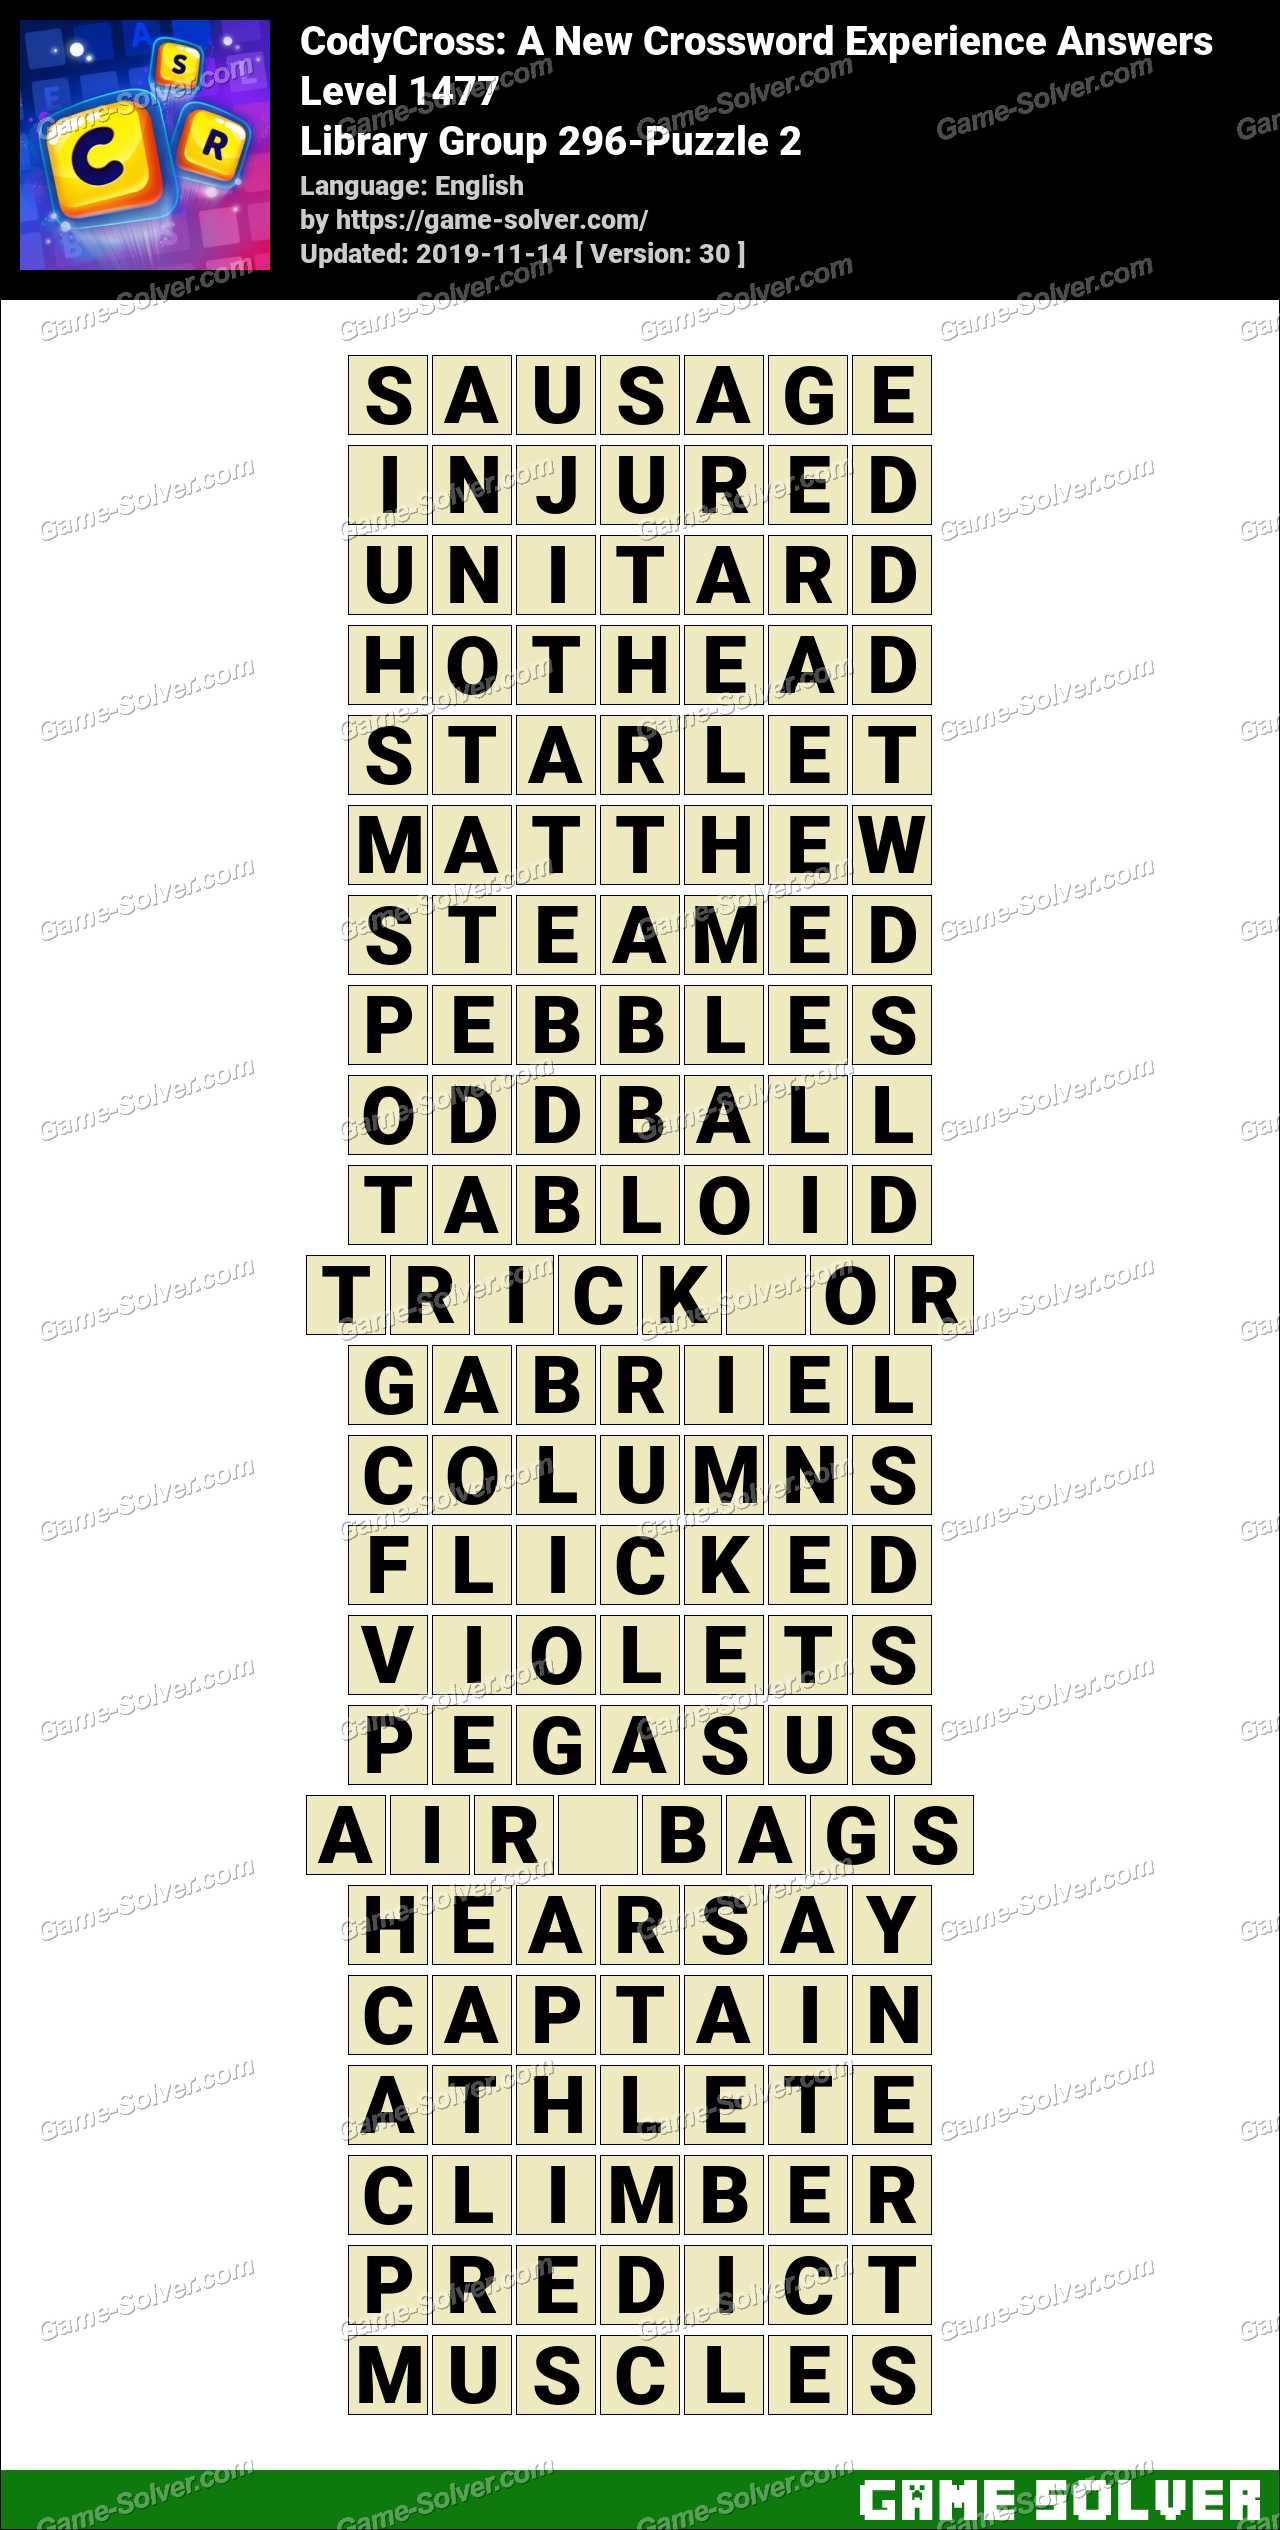 CodyCross Library Group 296-Puzzle 2 Answers